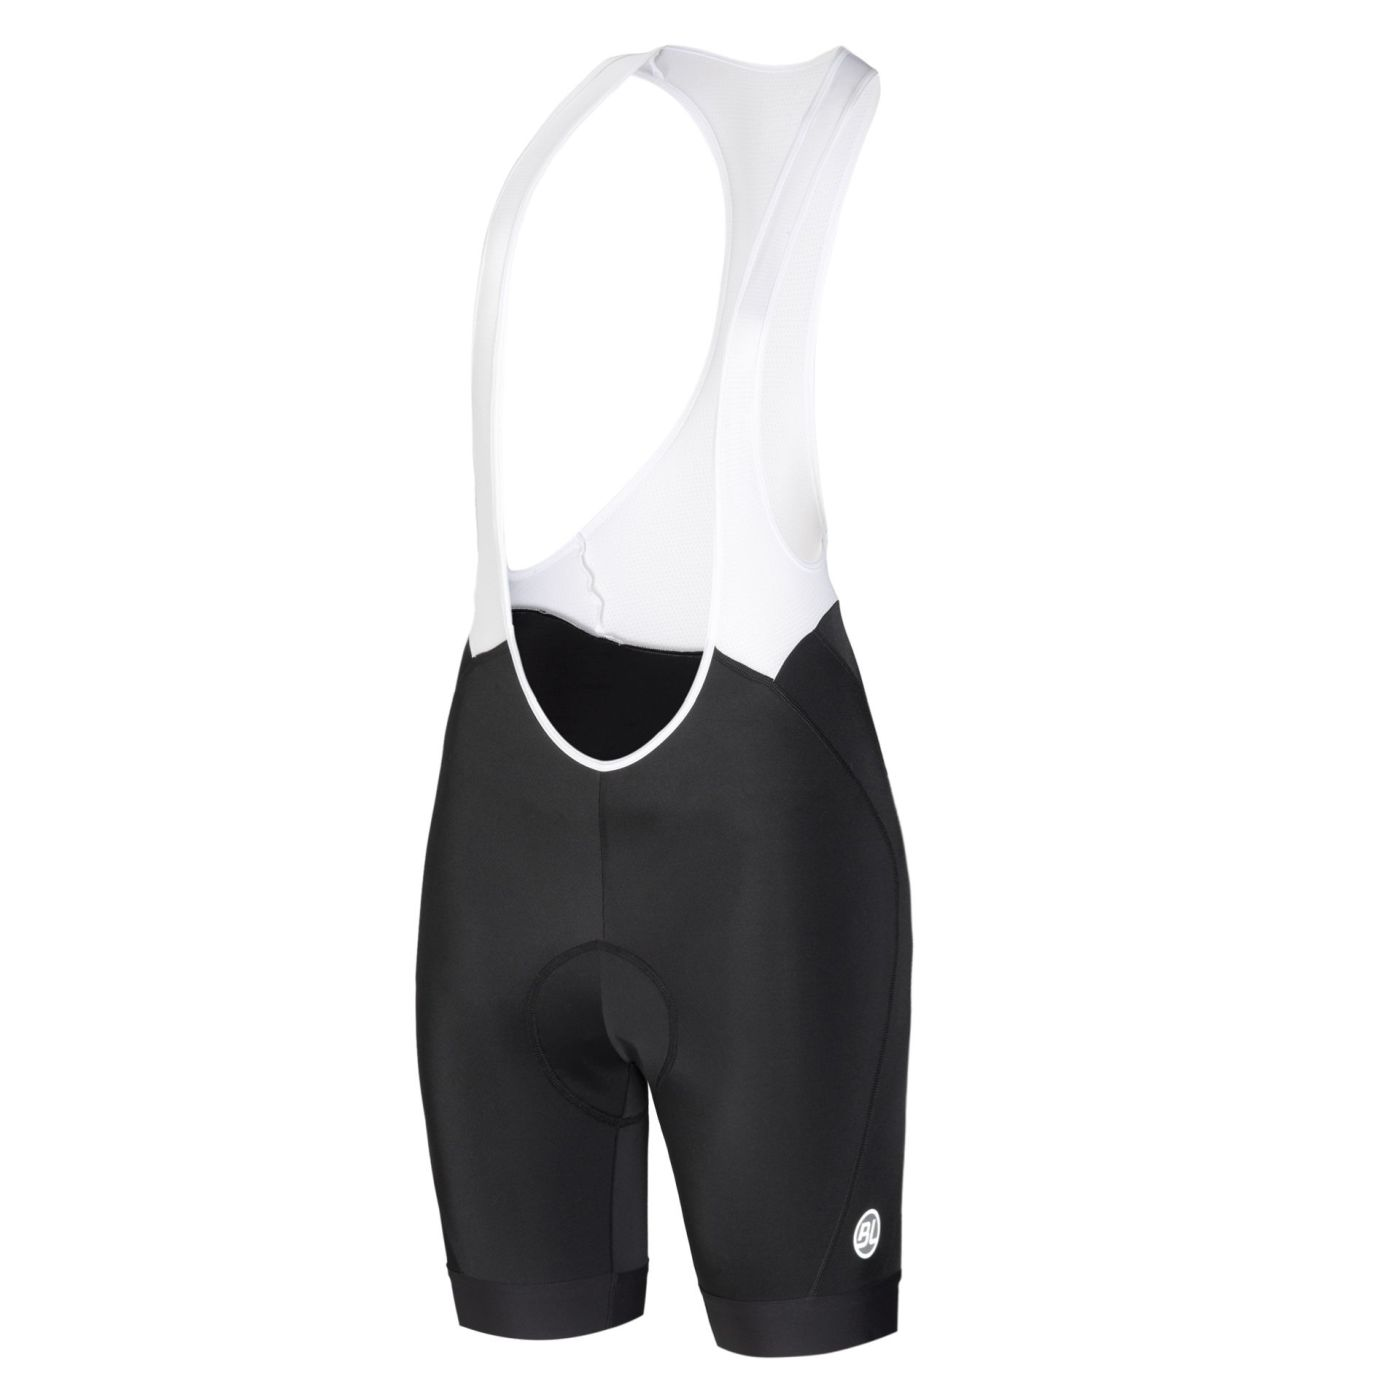 d1ade0f91 BL Freccia Womens Bib Shorts - Bib Shorts   Knickers - Cycle SuperStore